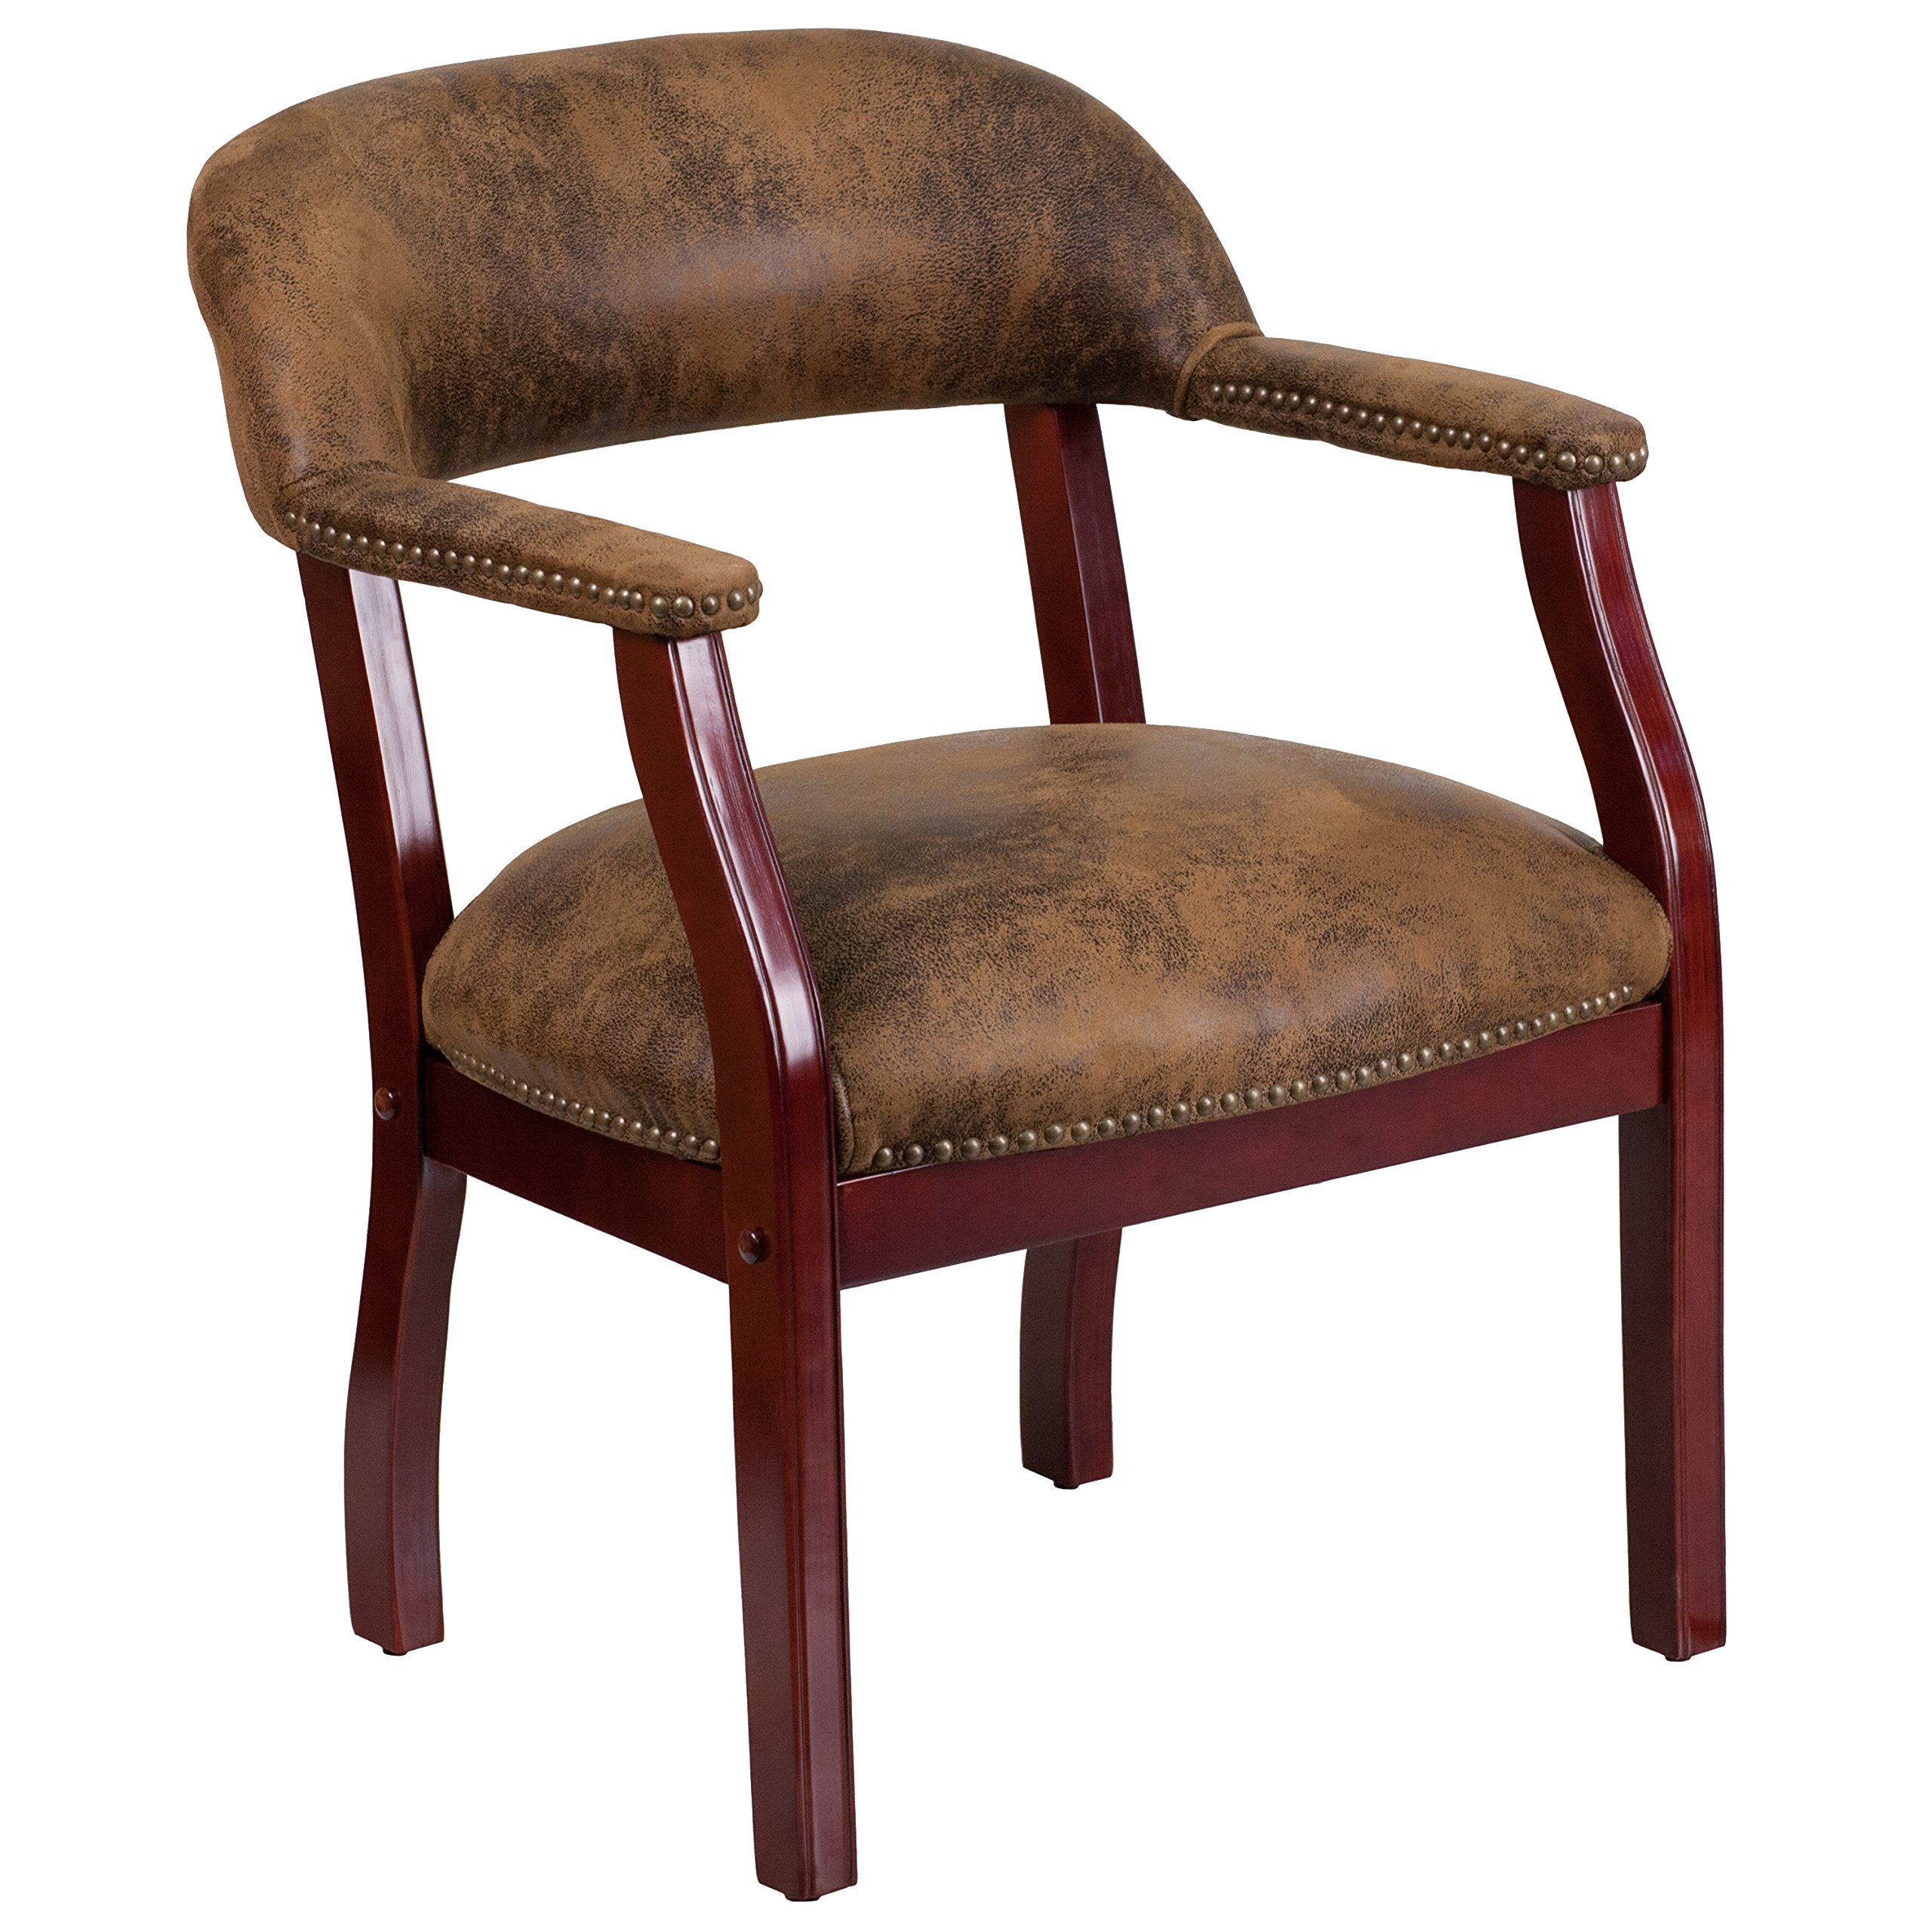 Flash Furniture Bomber Jacket Brown Luxurious Conference Chair with Accent Nail Trim by Flash Furniture